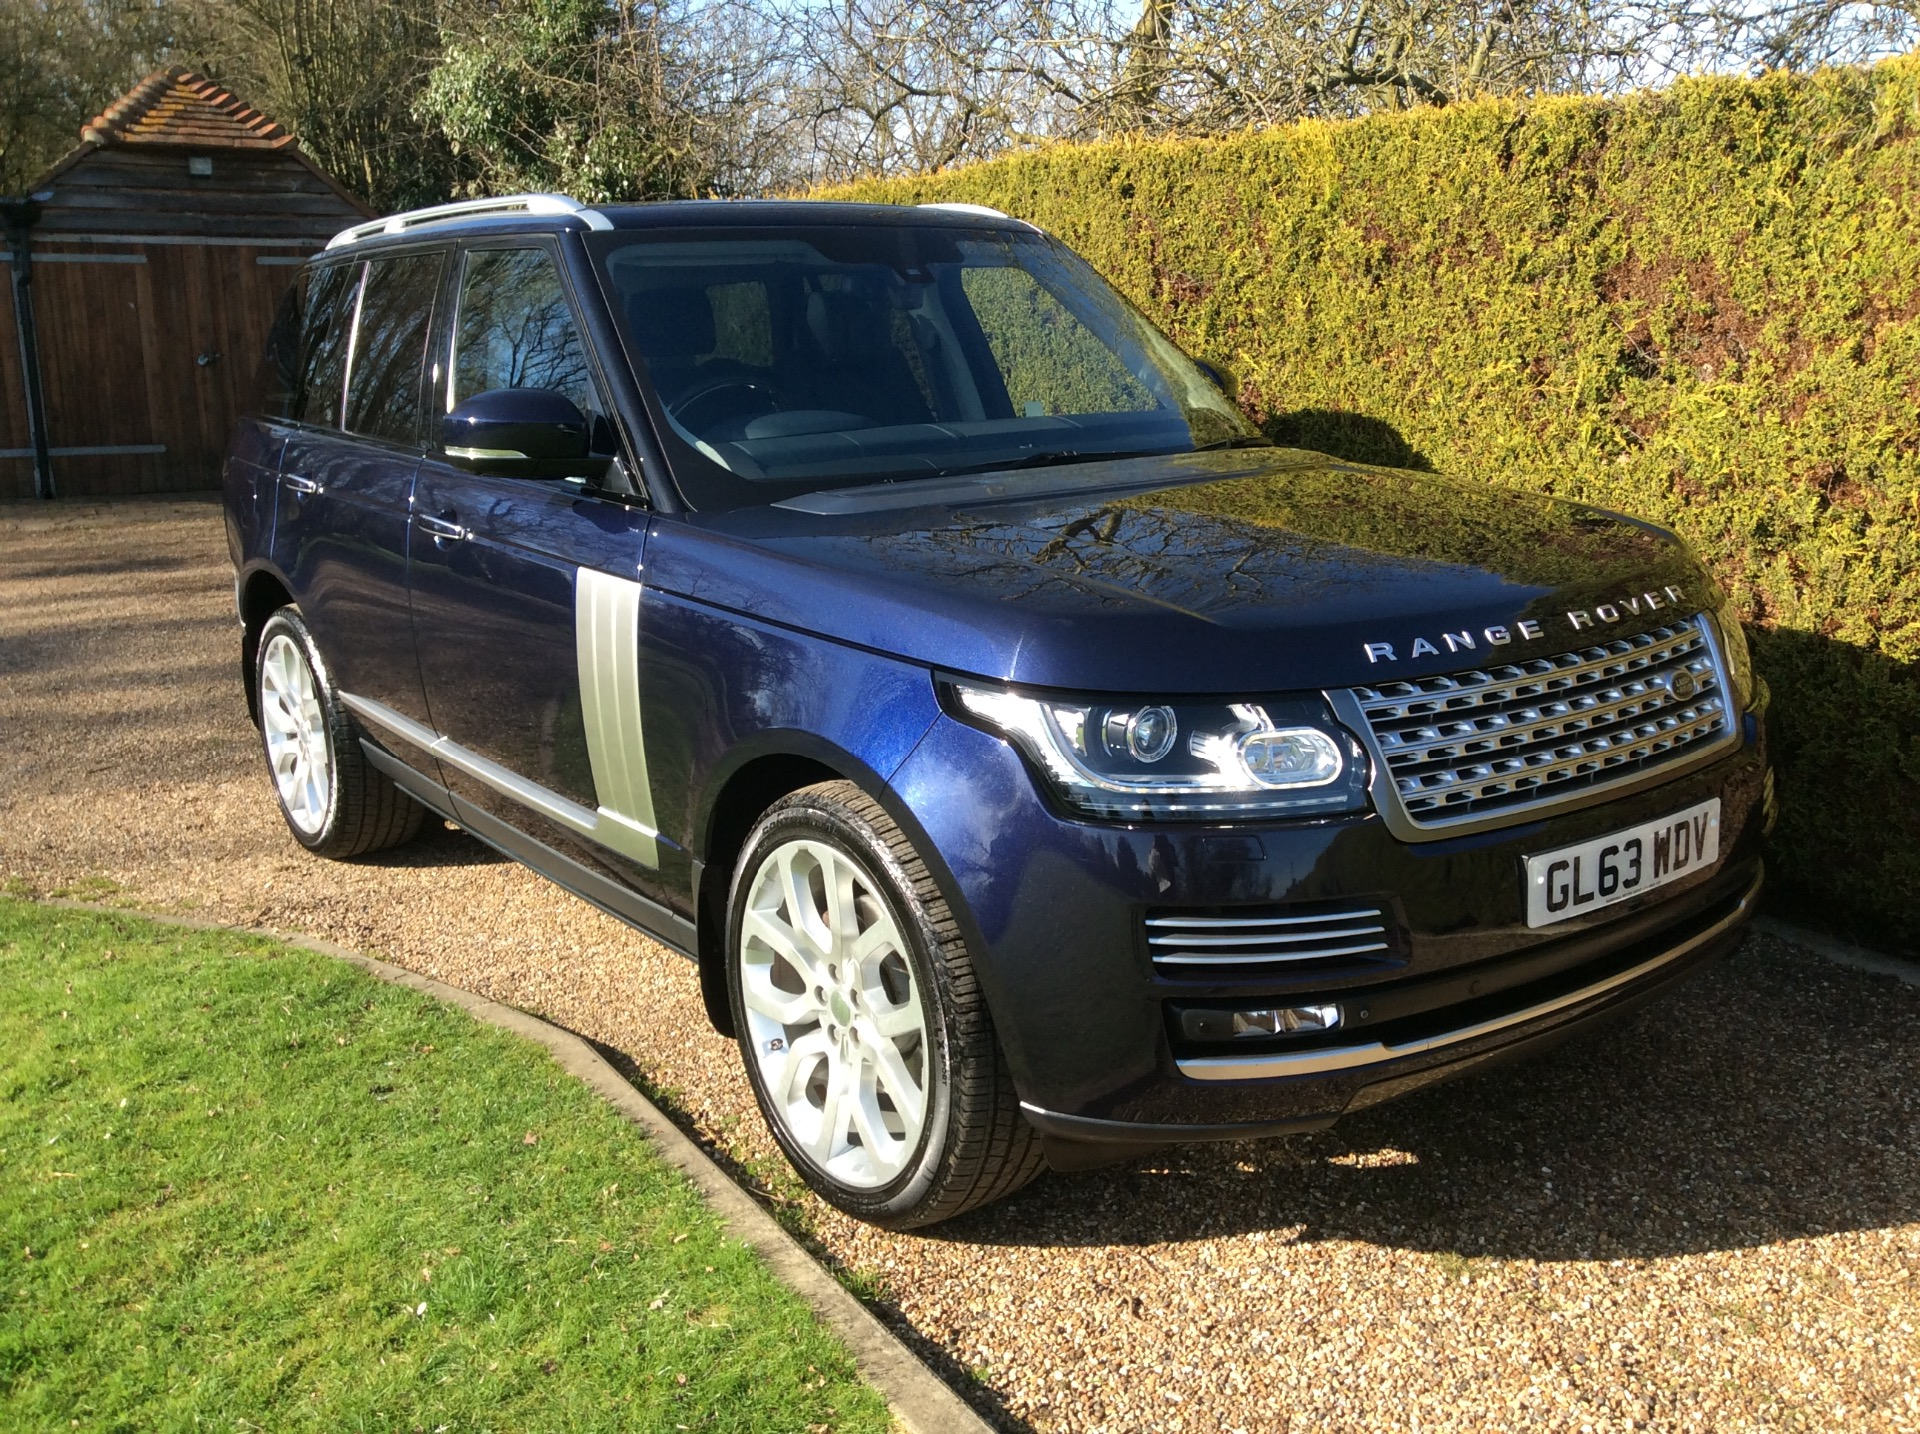 Used Land Rover Range Rover VOGUE Blue Cars for Sale